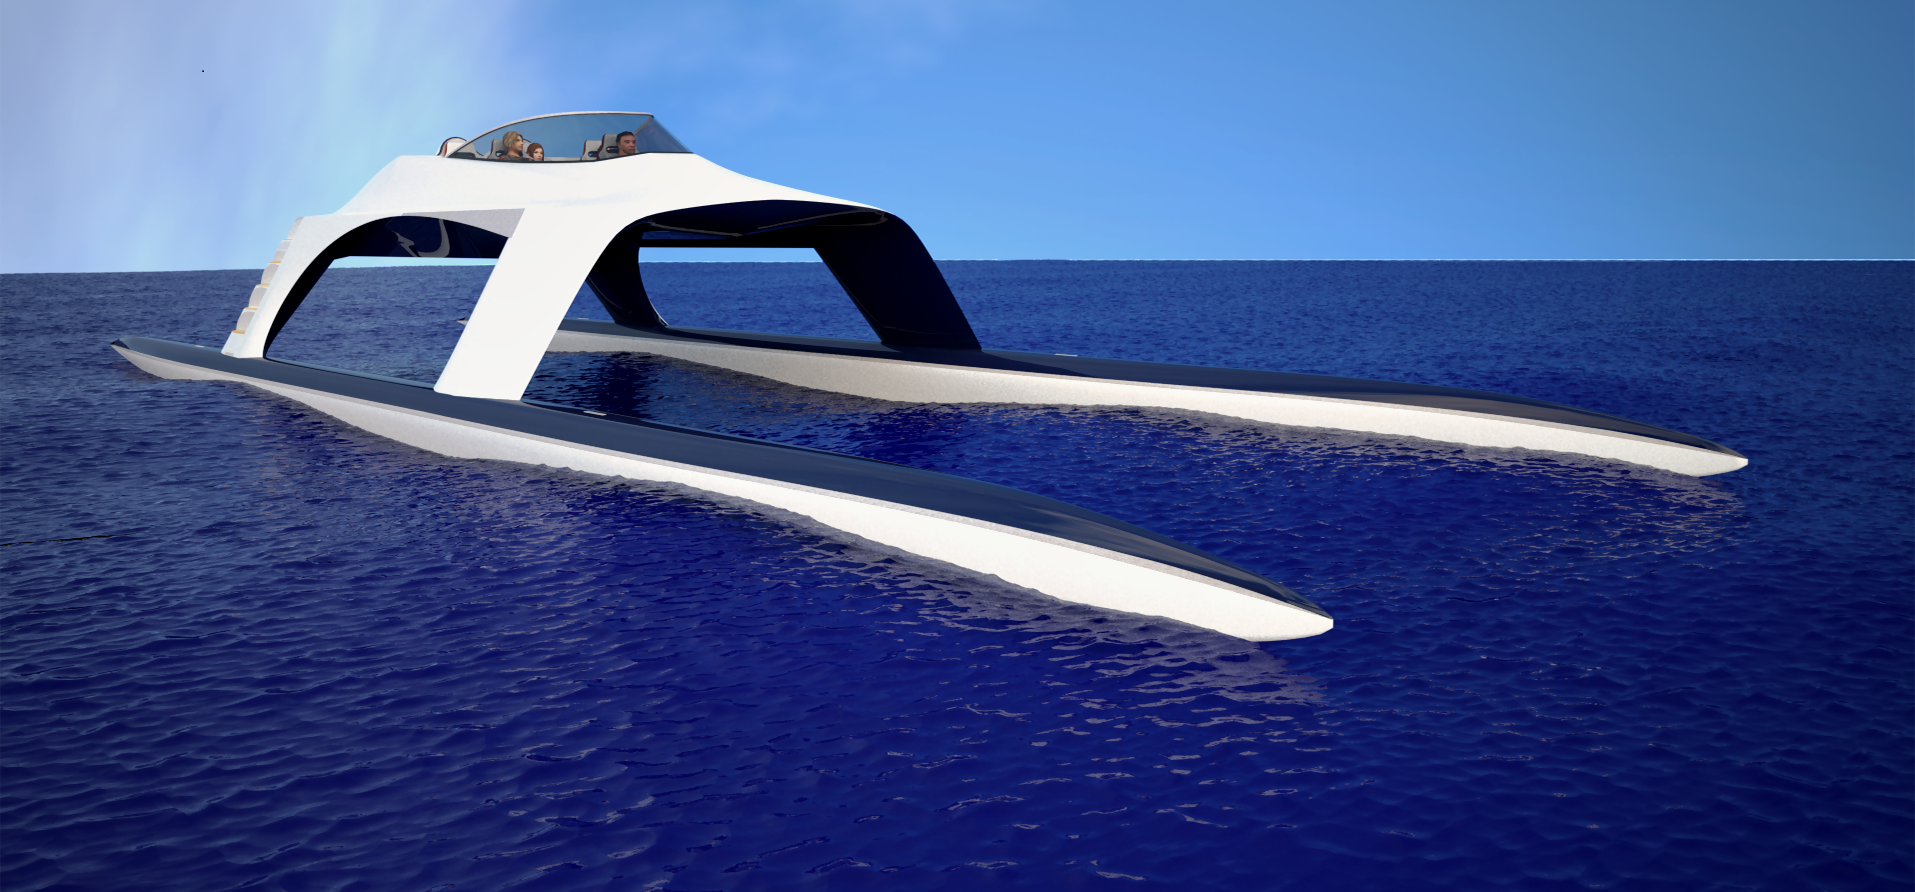 Glider Yachts' Debut Luxury Yacht - SS18